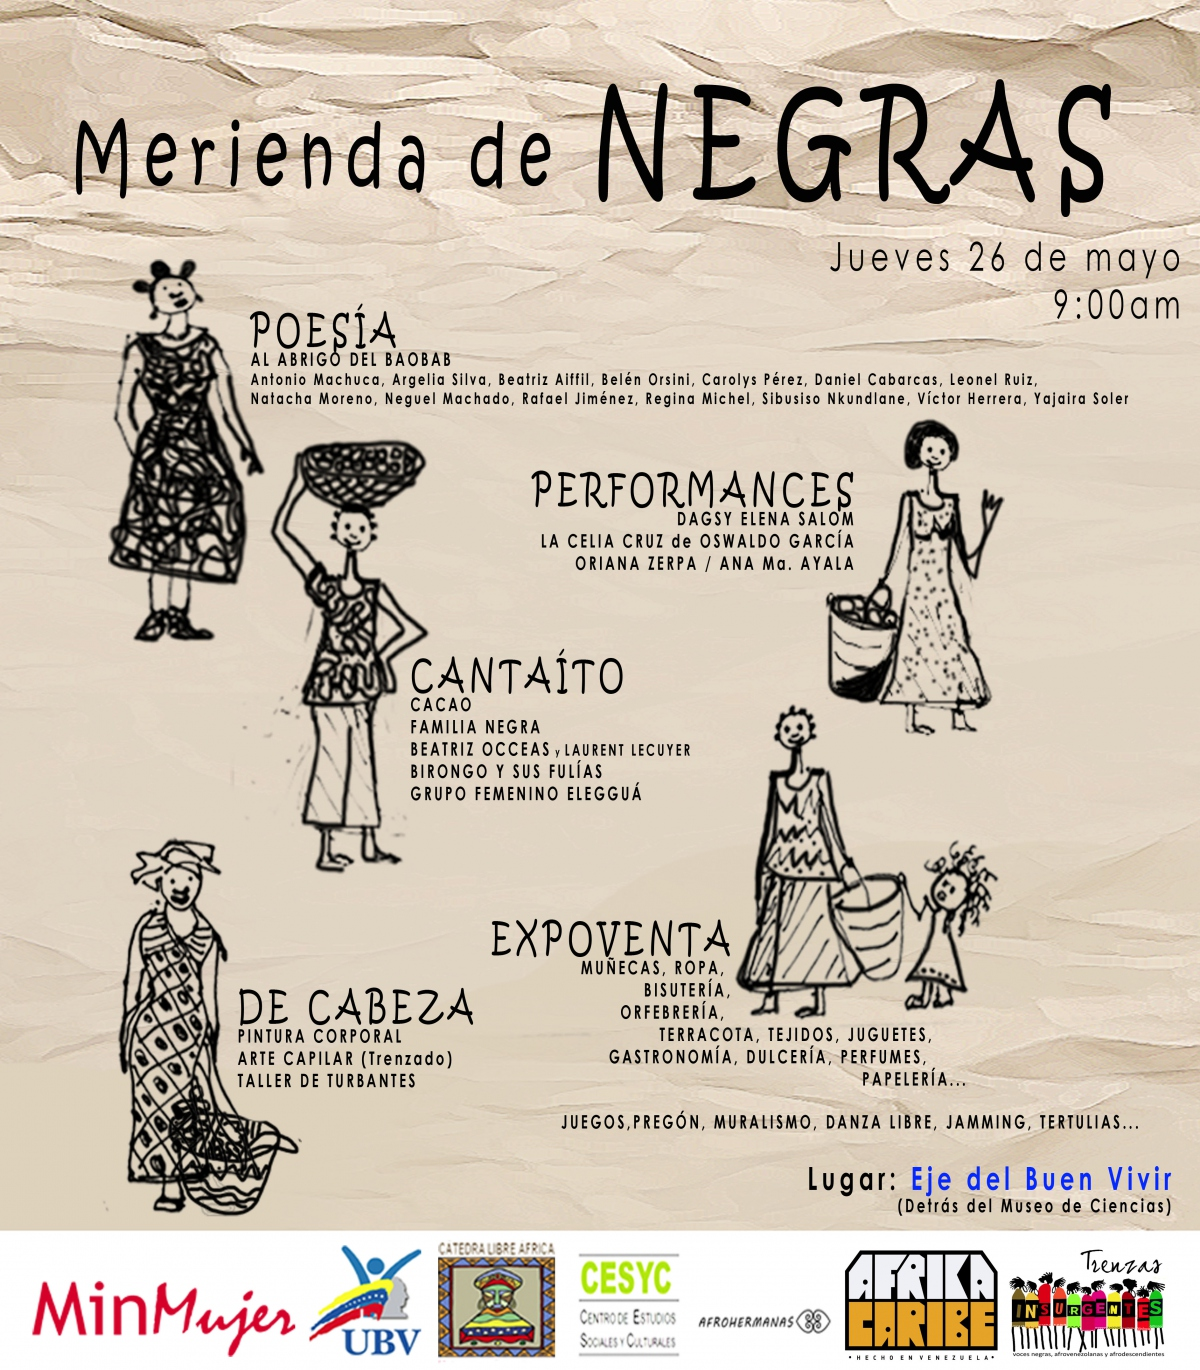 Official poster for Thursday's public events in Caracas (MinMujer).